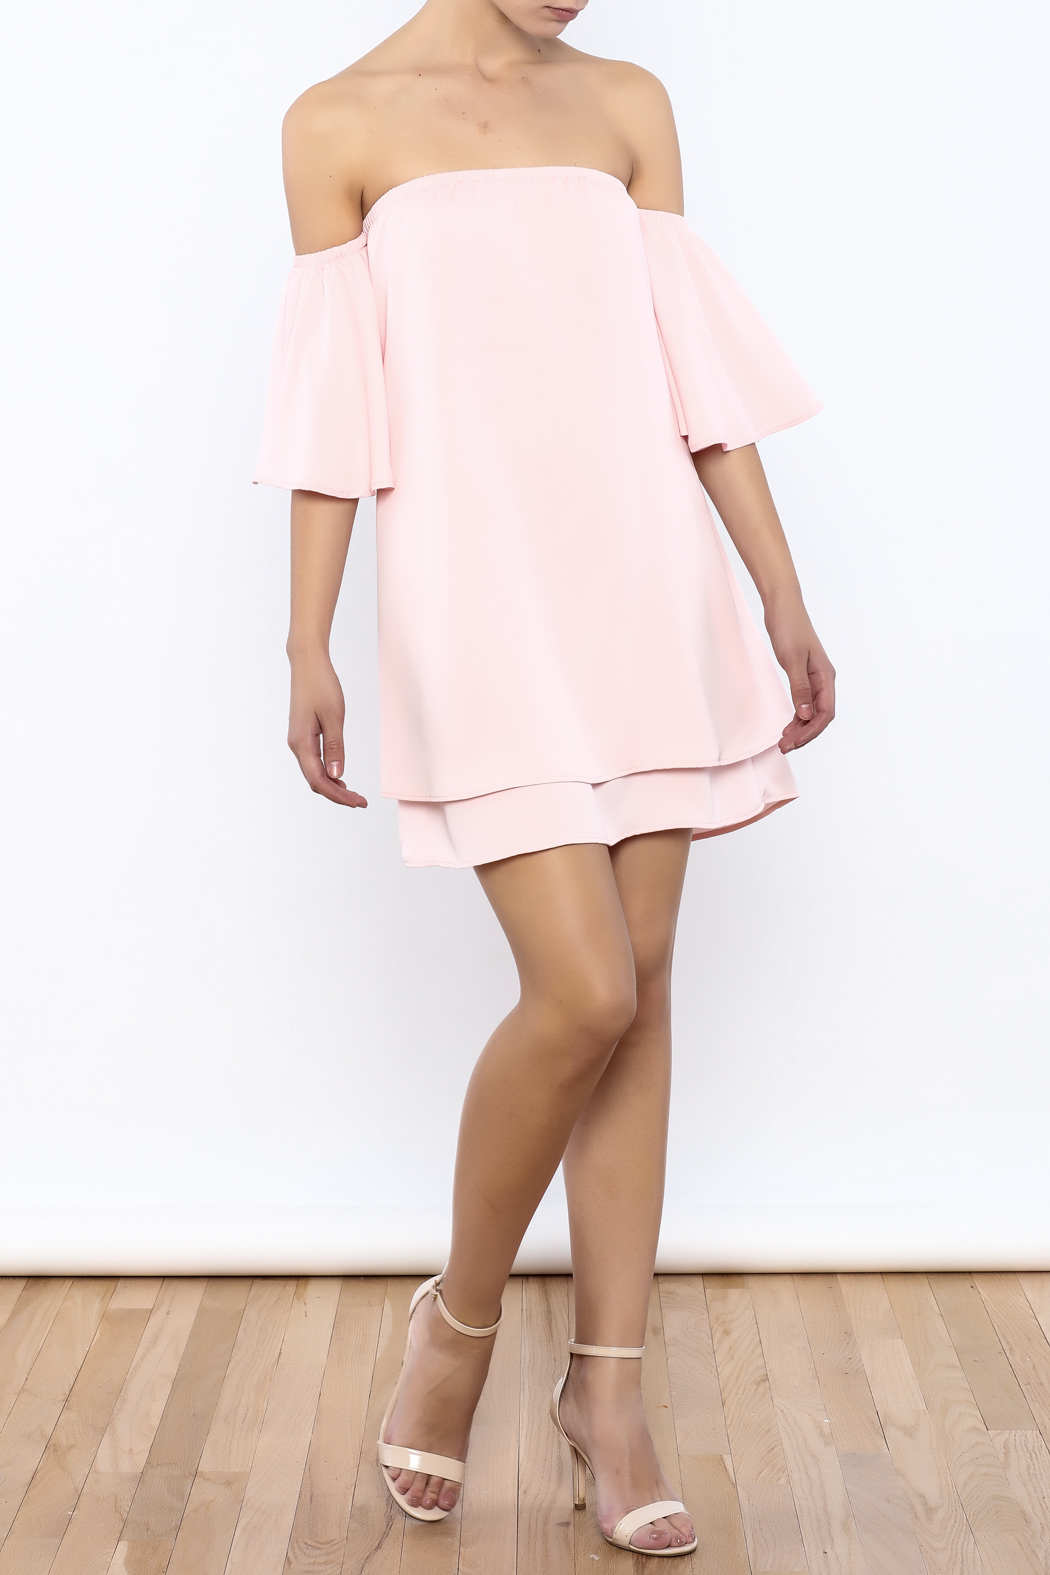 Bacio Soft Pink Top - Front Full Image